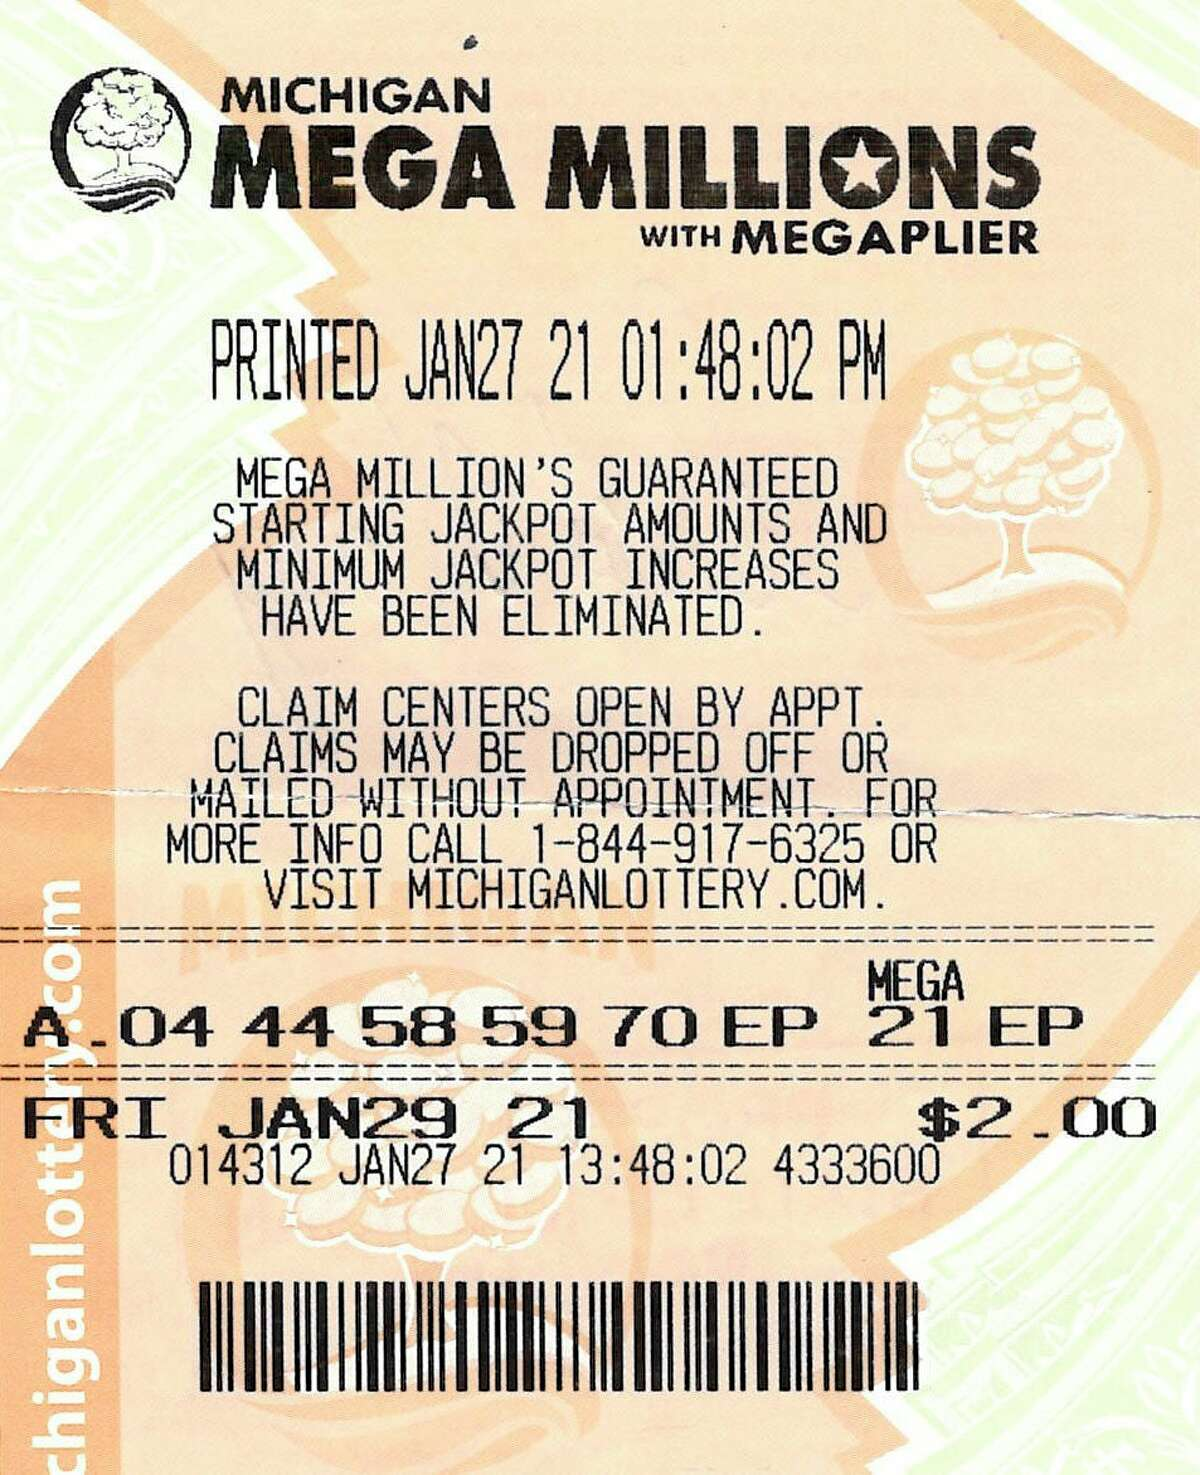 Gerald Carrig, of Irons, recentlyclaimed his $1 million prize after matching five white balls in the Jan. 29 Mega Millions drawing.(Courtesy/Michigan Lottery)